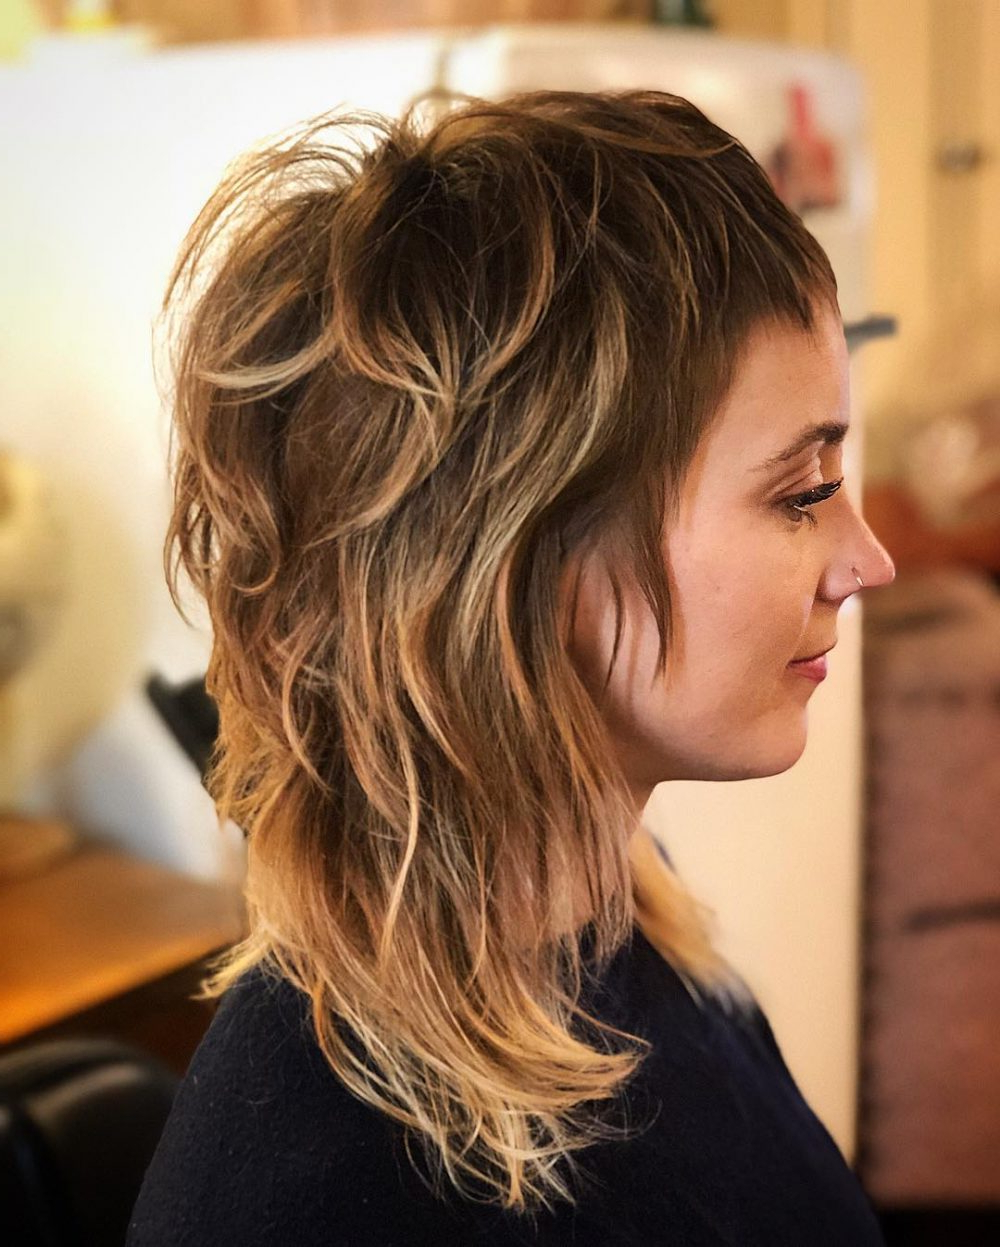 34 Short Bangs That Are Totally Hot In 2018 Pertaining To Short Haircuts With Side Fringe (View 22 of 25)